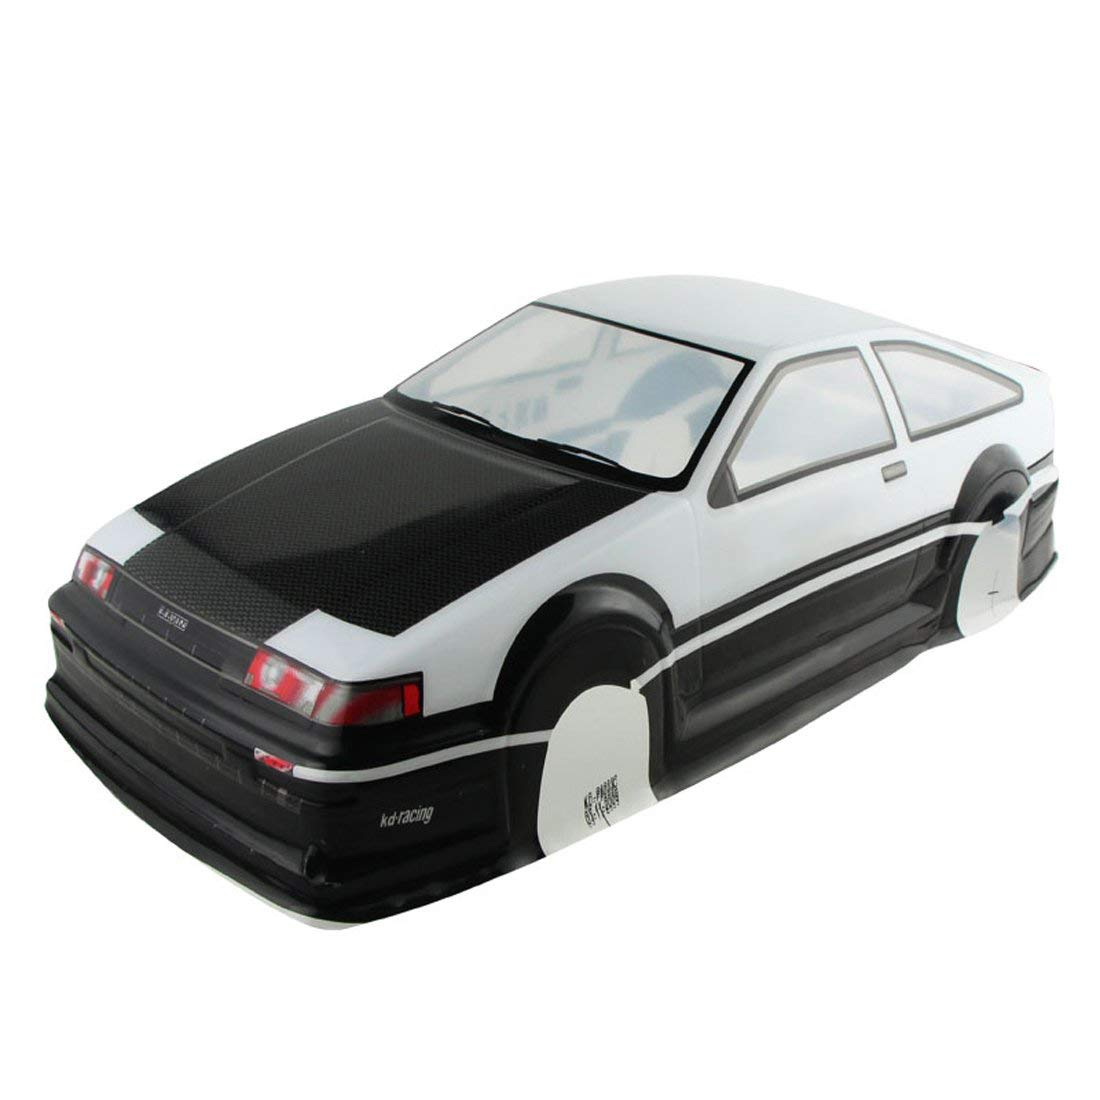 Coolplay 1/10 PVC Painted Body Shell RC Racing Car Accessories for Toyota Corolla AE86